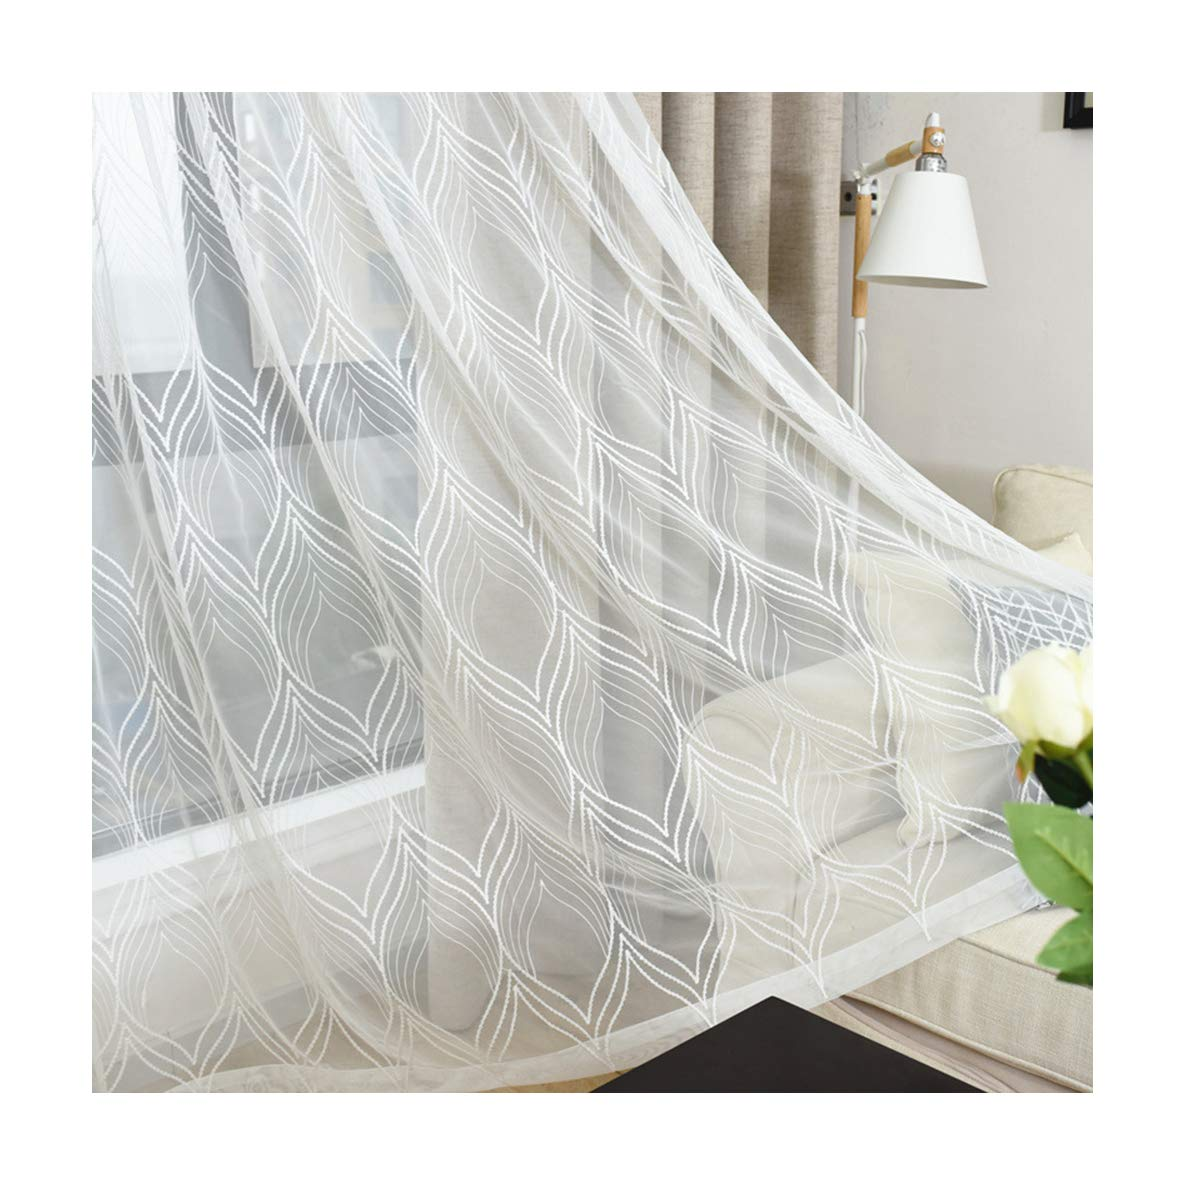 Aside Bside Sheer Curtains Classic Style Rod Pockets Lozenge Wave Knitting Permeable Window Decoration For Kitchen Sitting Room and Houseroom (1 Panel, W 52 x L 95 inch, White)